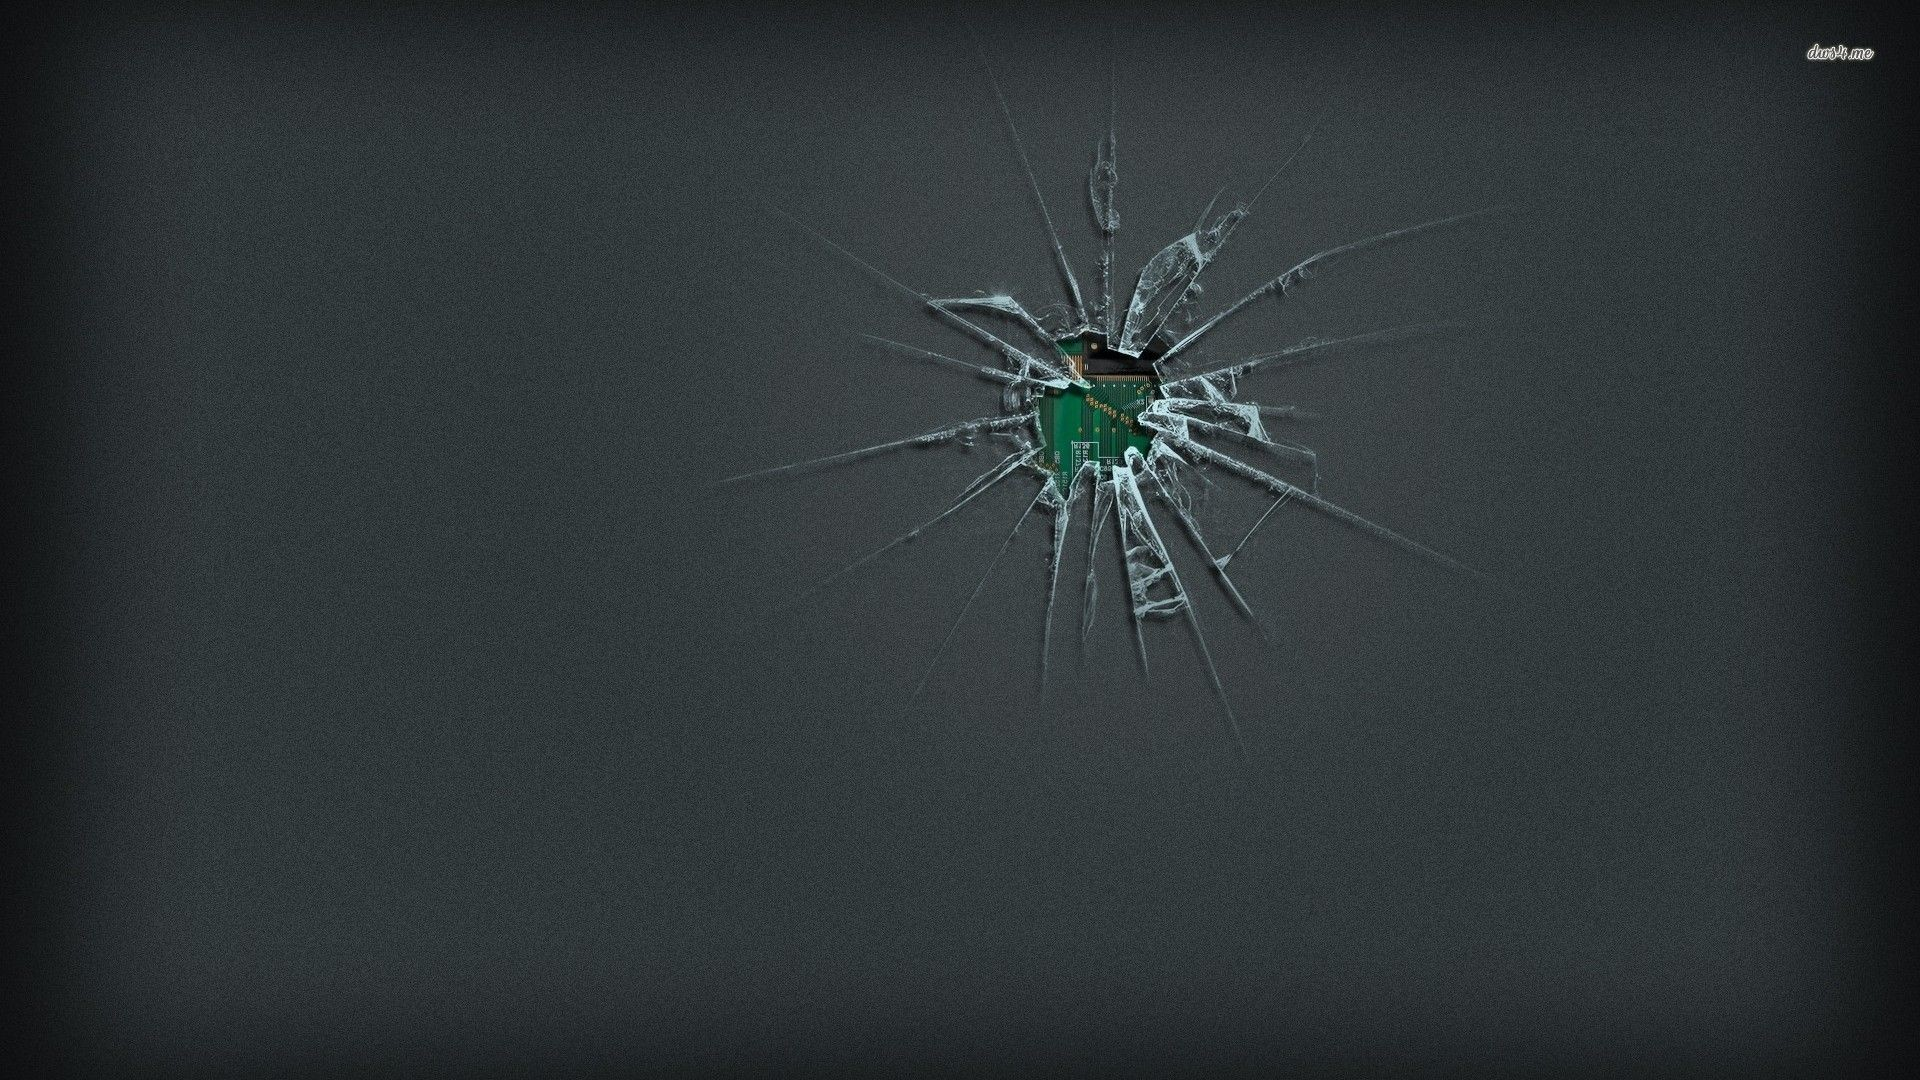 Top Images For Fake Cracked Screen Wallpaper On Picsunday 12 10 2018 To 0929